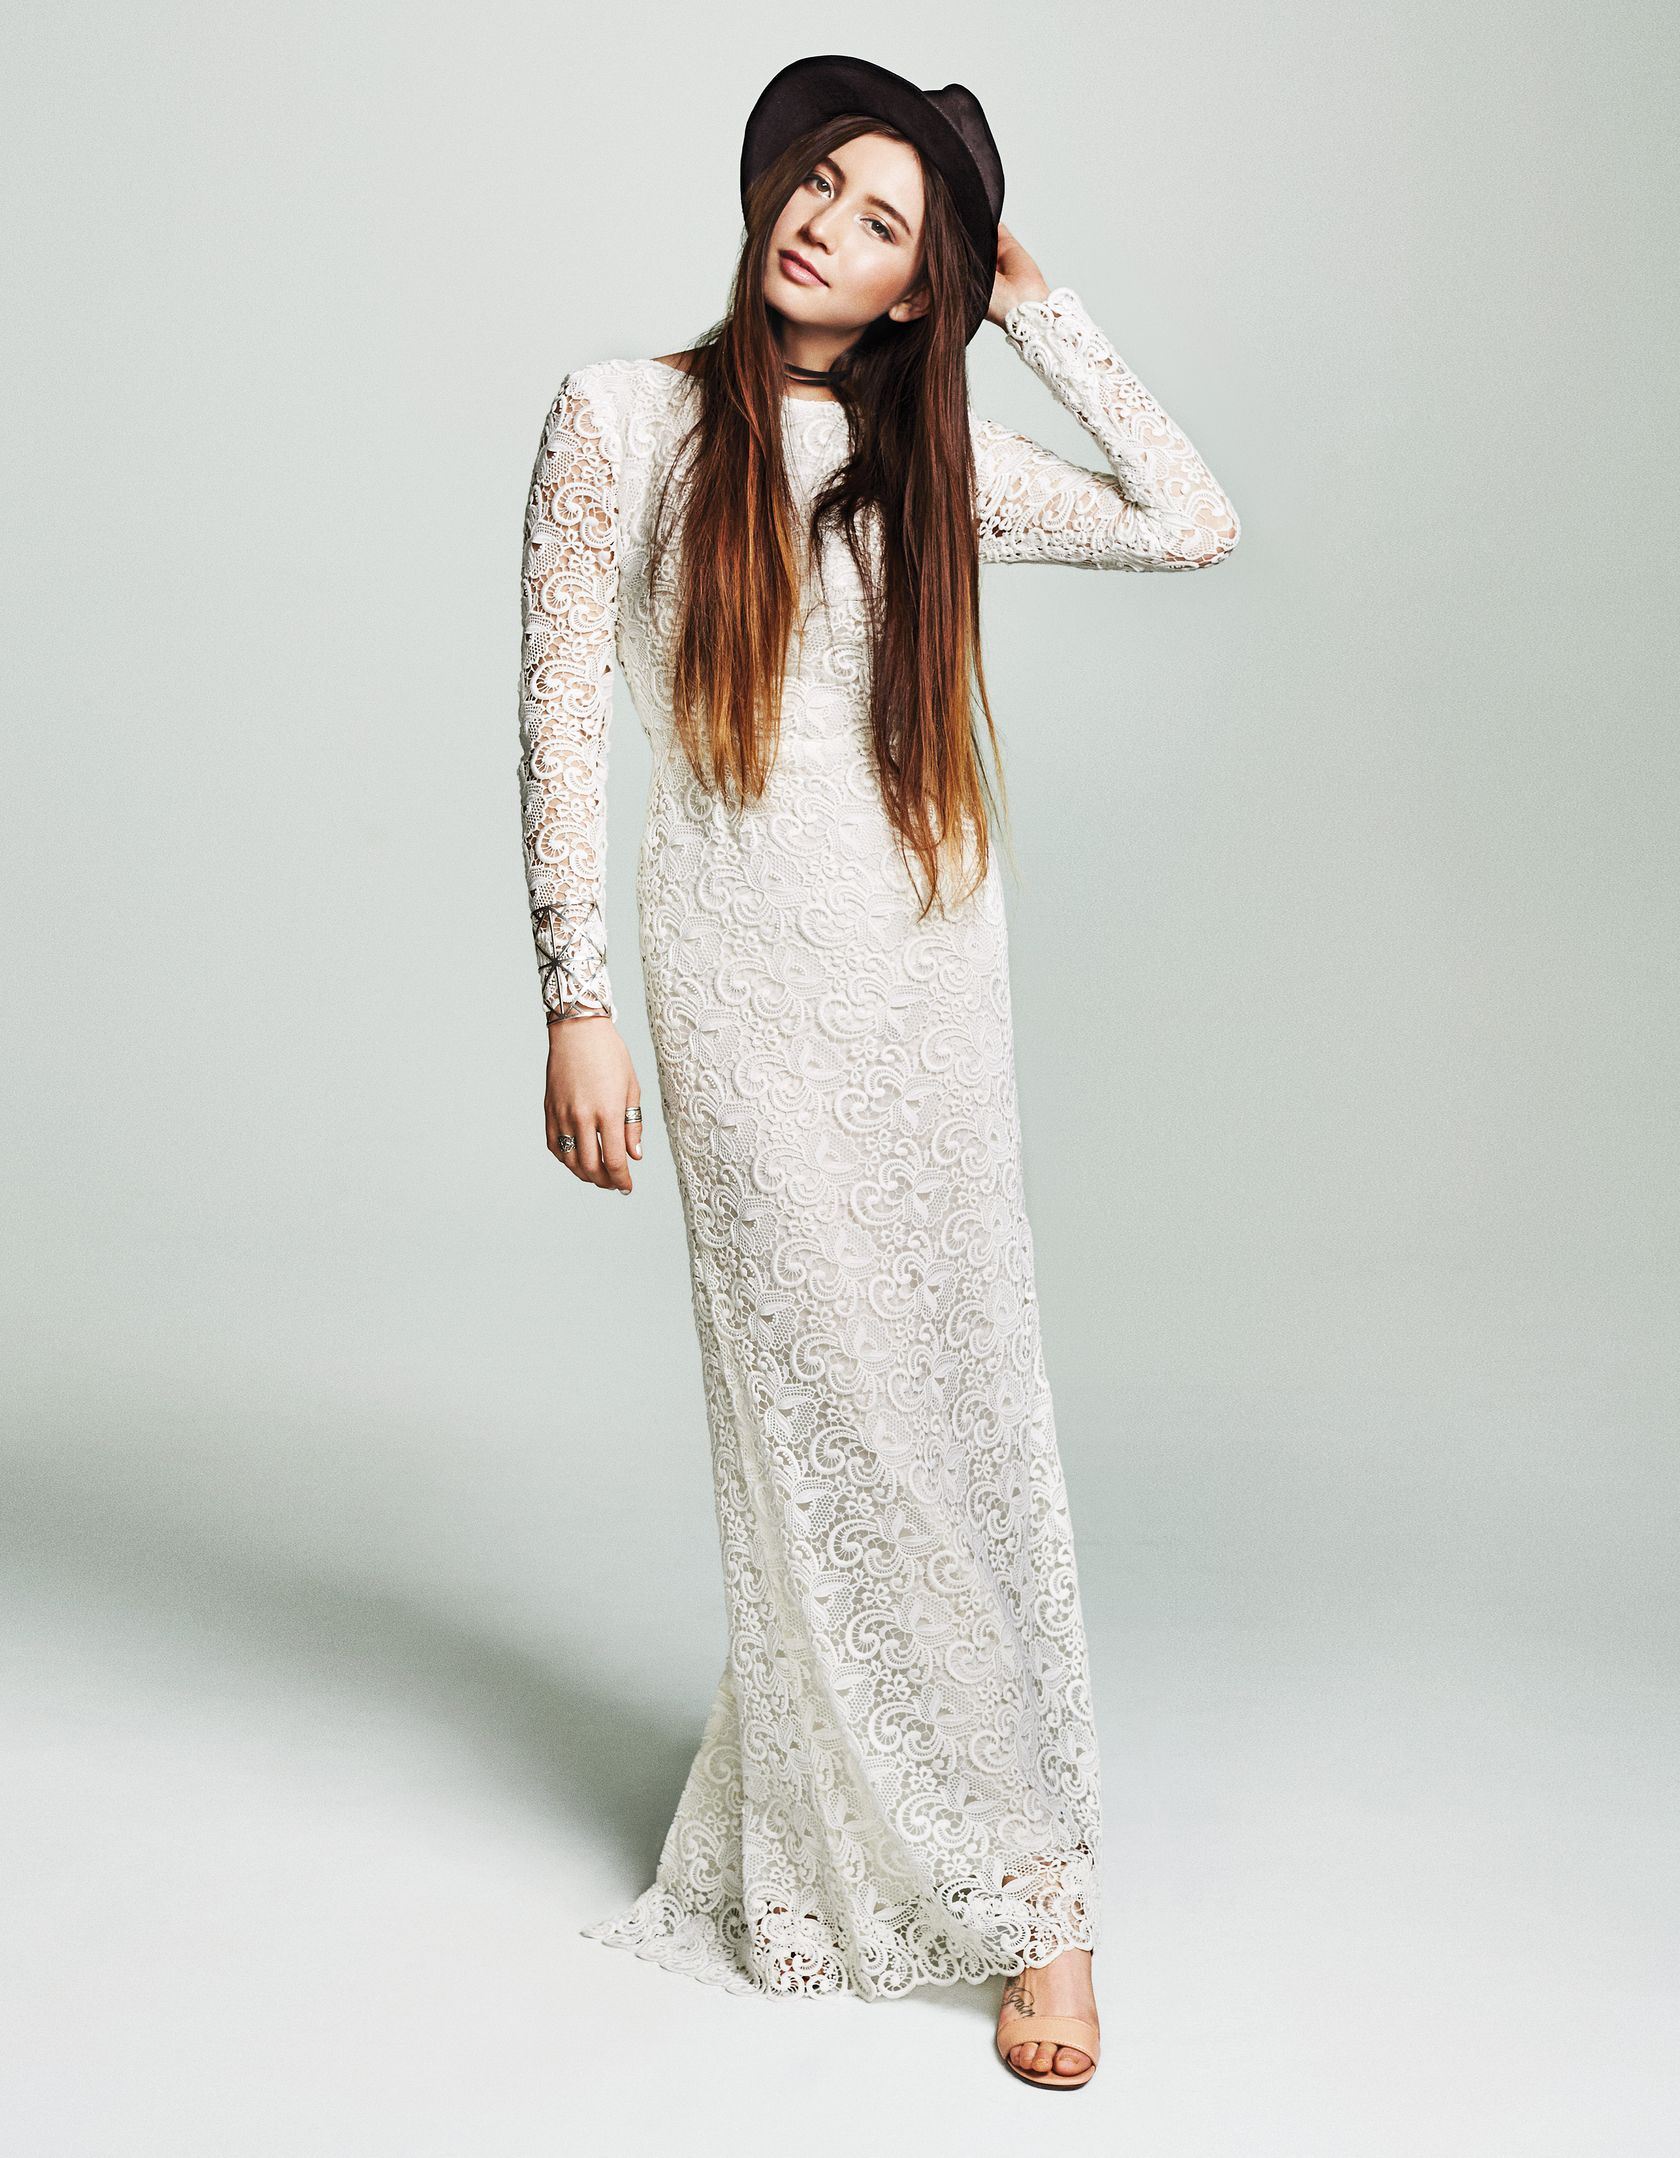 Fresh Takes on Classic Wedding Gowns - The Cut